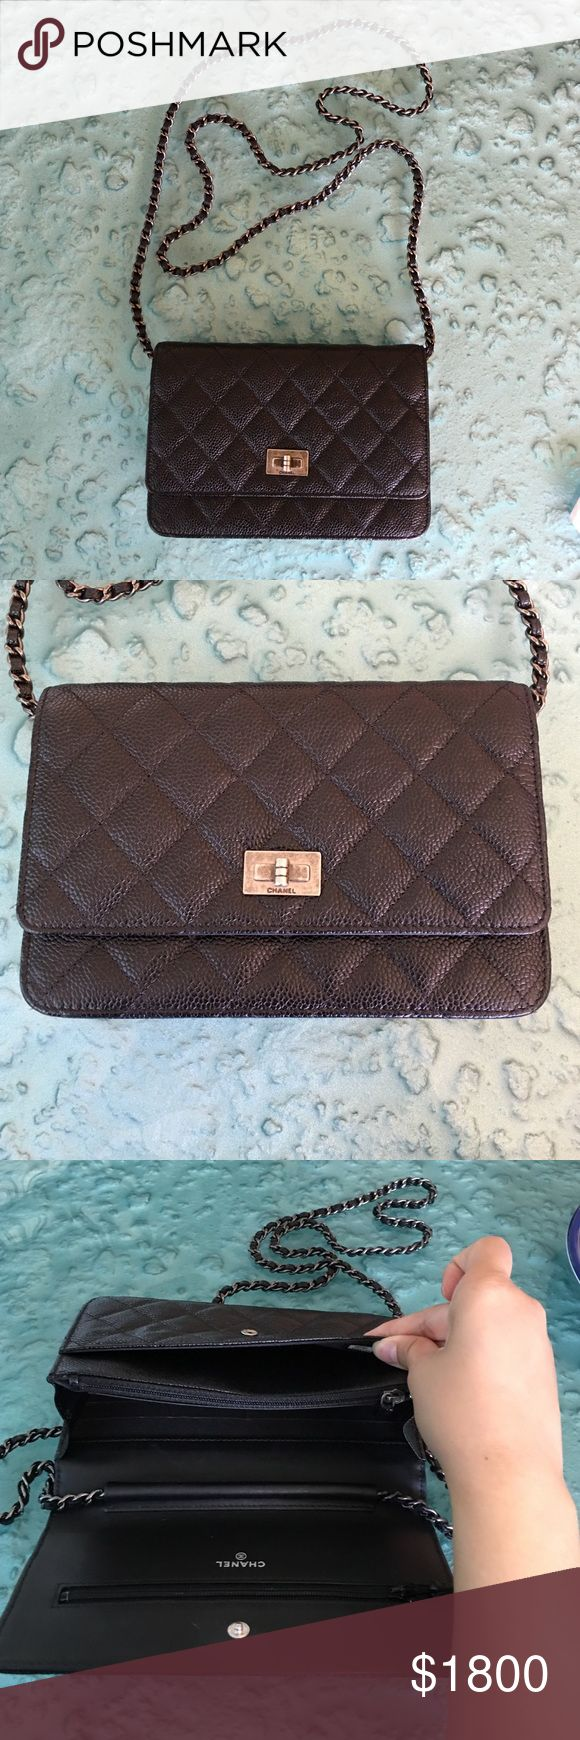 Authentic Chanel Reissue 2.55 (WOC) caviar Still new, bought it last year 2015 in Waikiki Hawaii.It's in perfect condition 9.5/10. Lost everything bag only. Chanel Bags Crossbody Bags